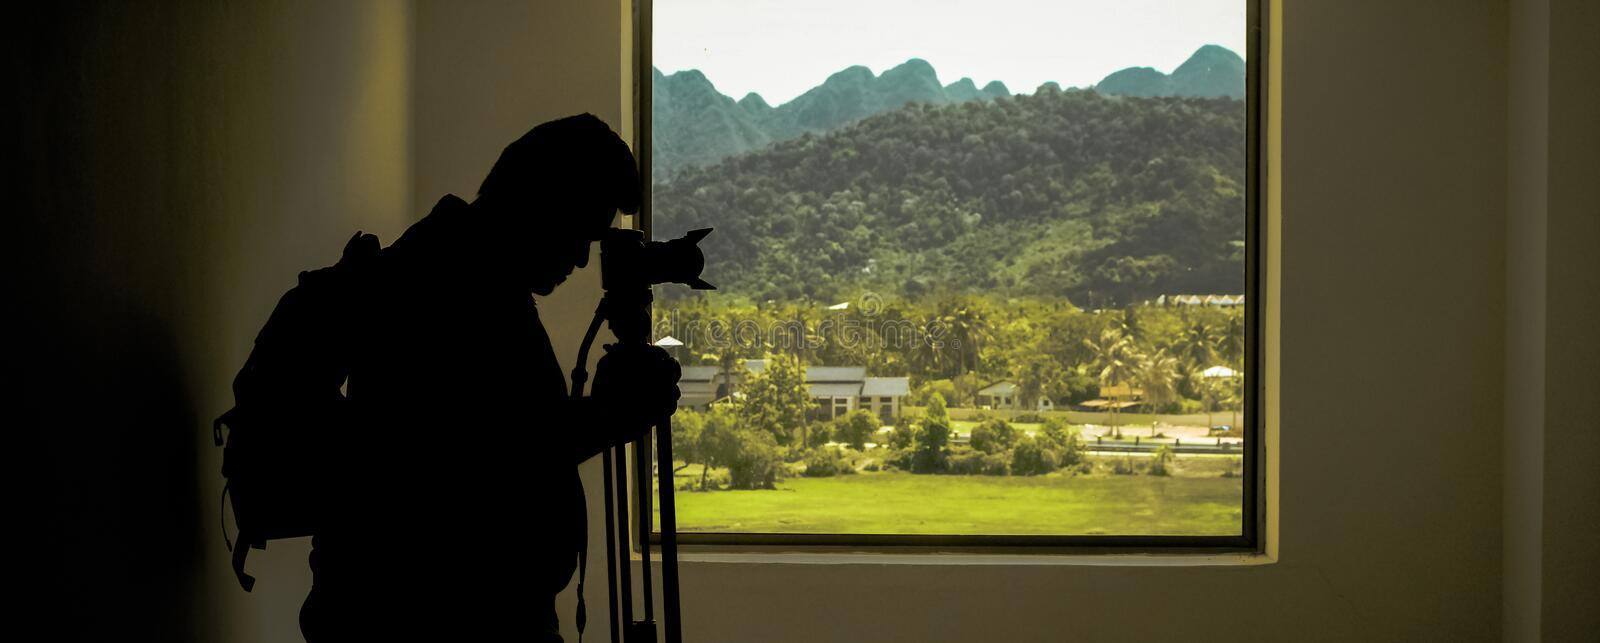 Adult, Backlit, Building royalty free stock photo